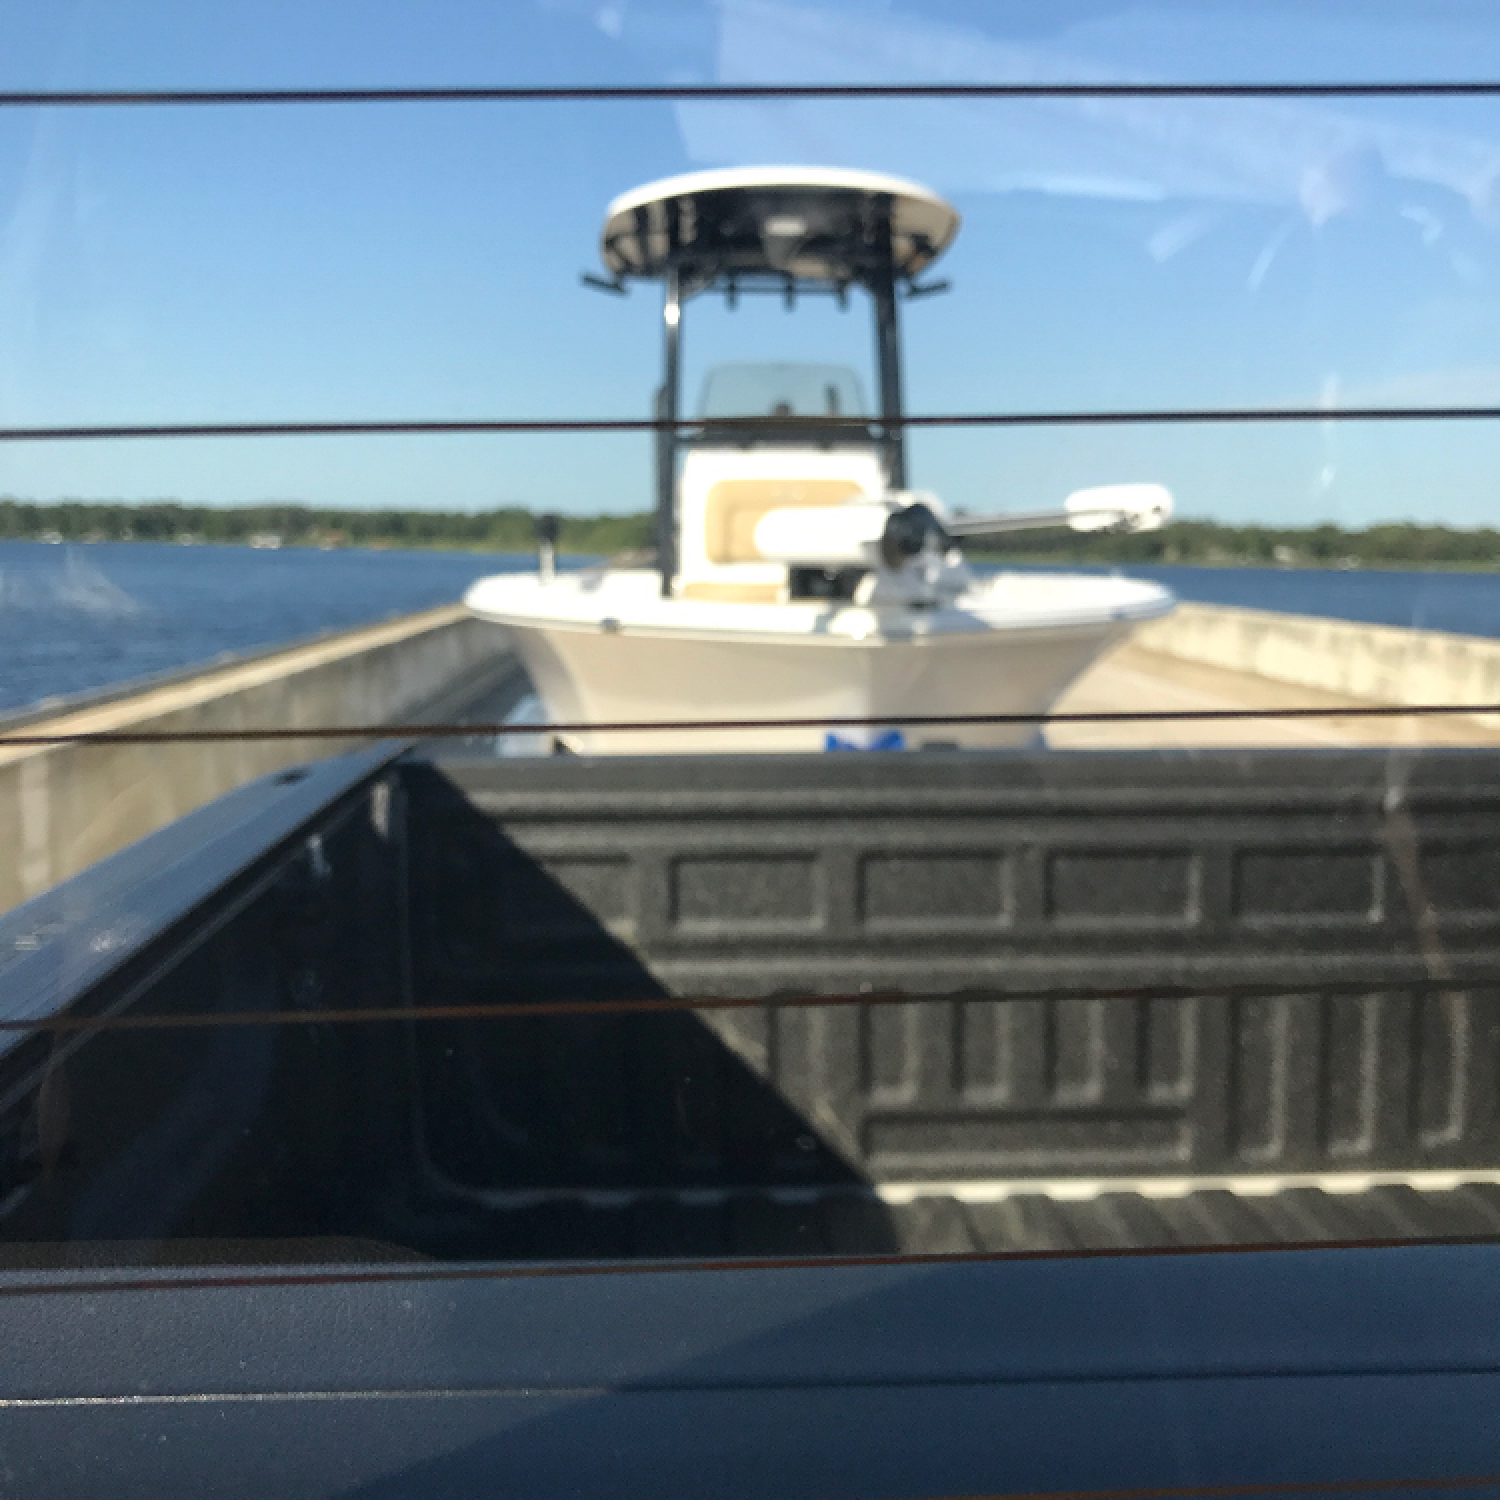 Title: 2018 Sportsman 247 Custom - On board their Sportsman Masters 247 Bay Boat - Location: Fleming Island, Florida. Participating in the Photo Contest #SportsmanSeptember2017